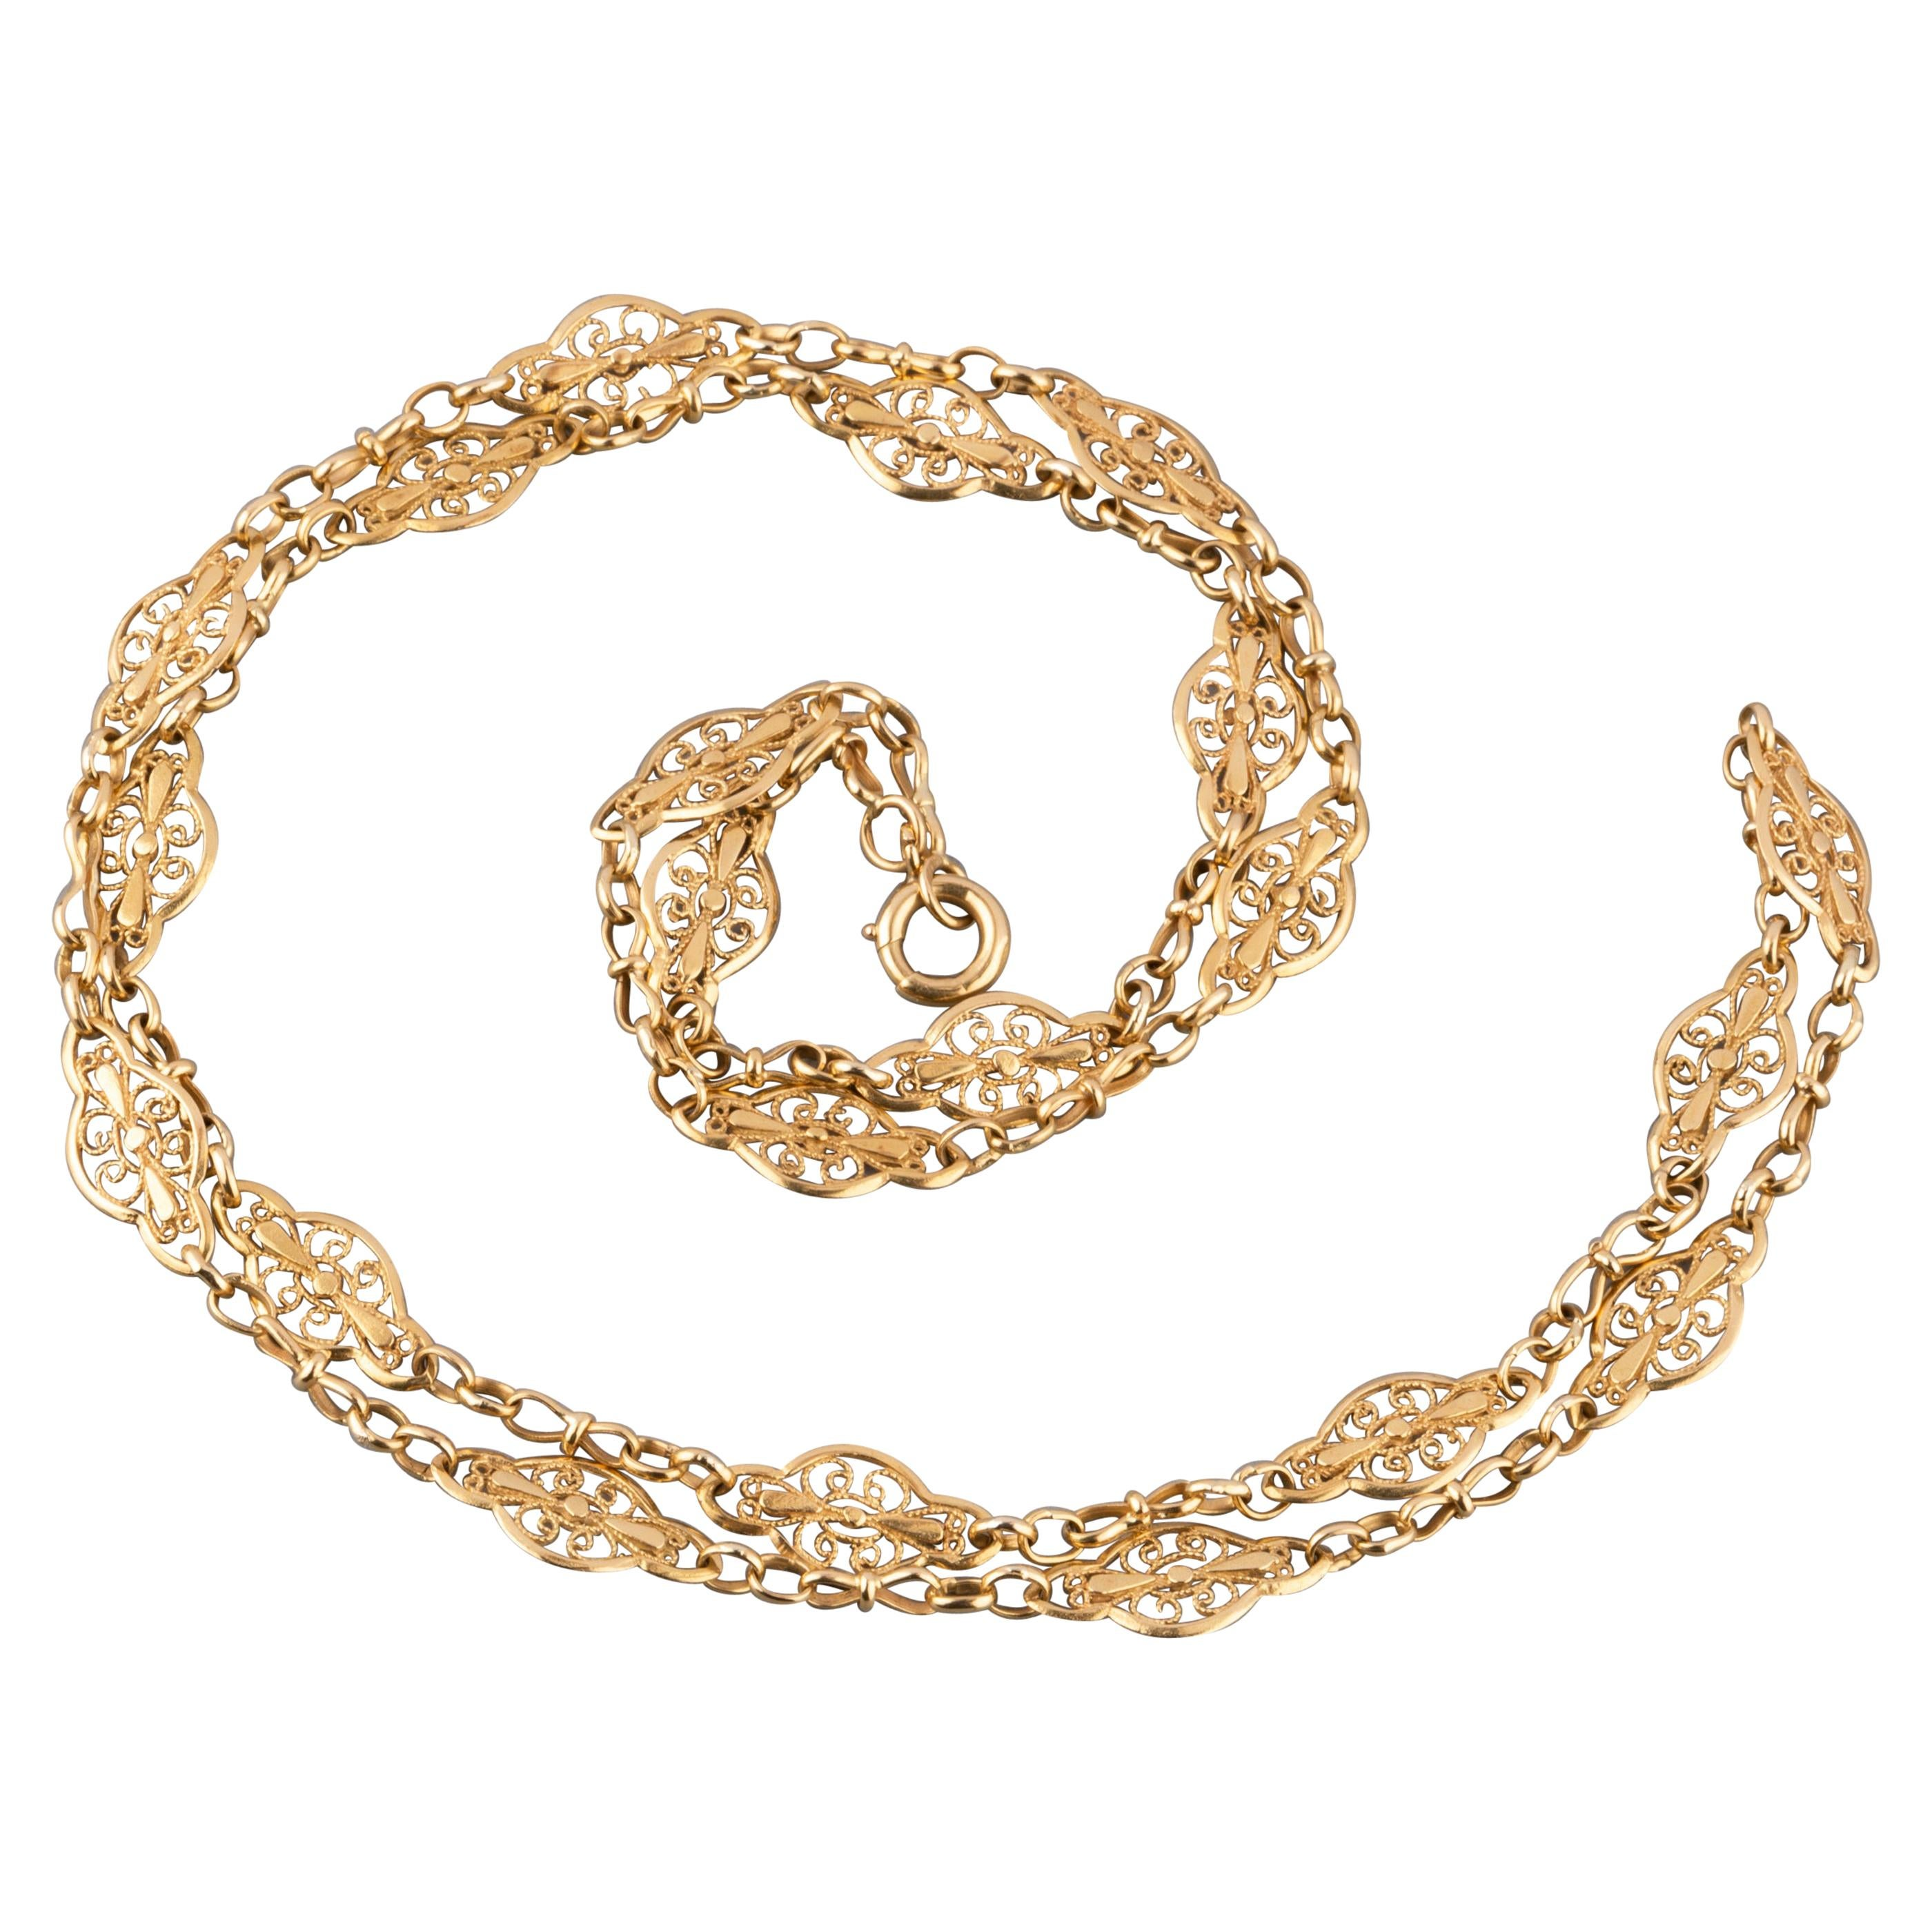 Antique French Gold Chain Necklace